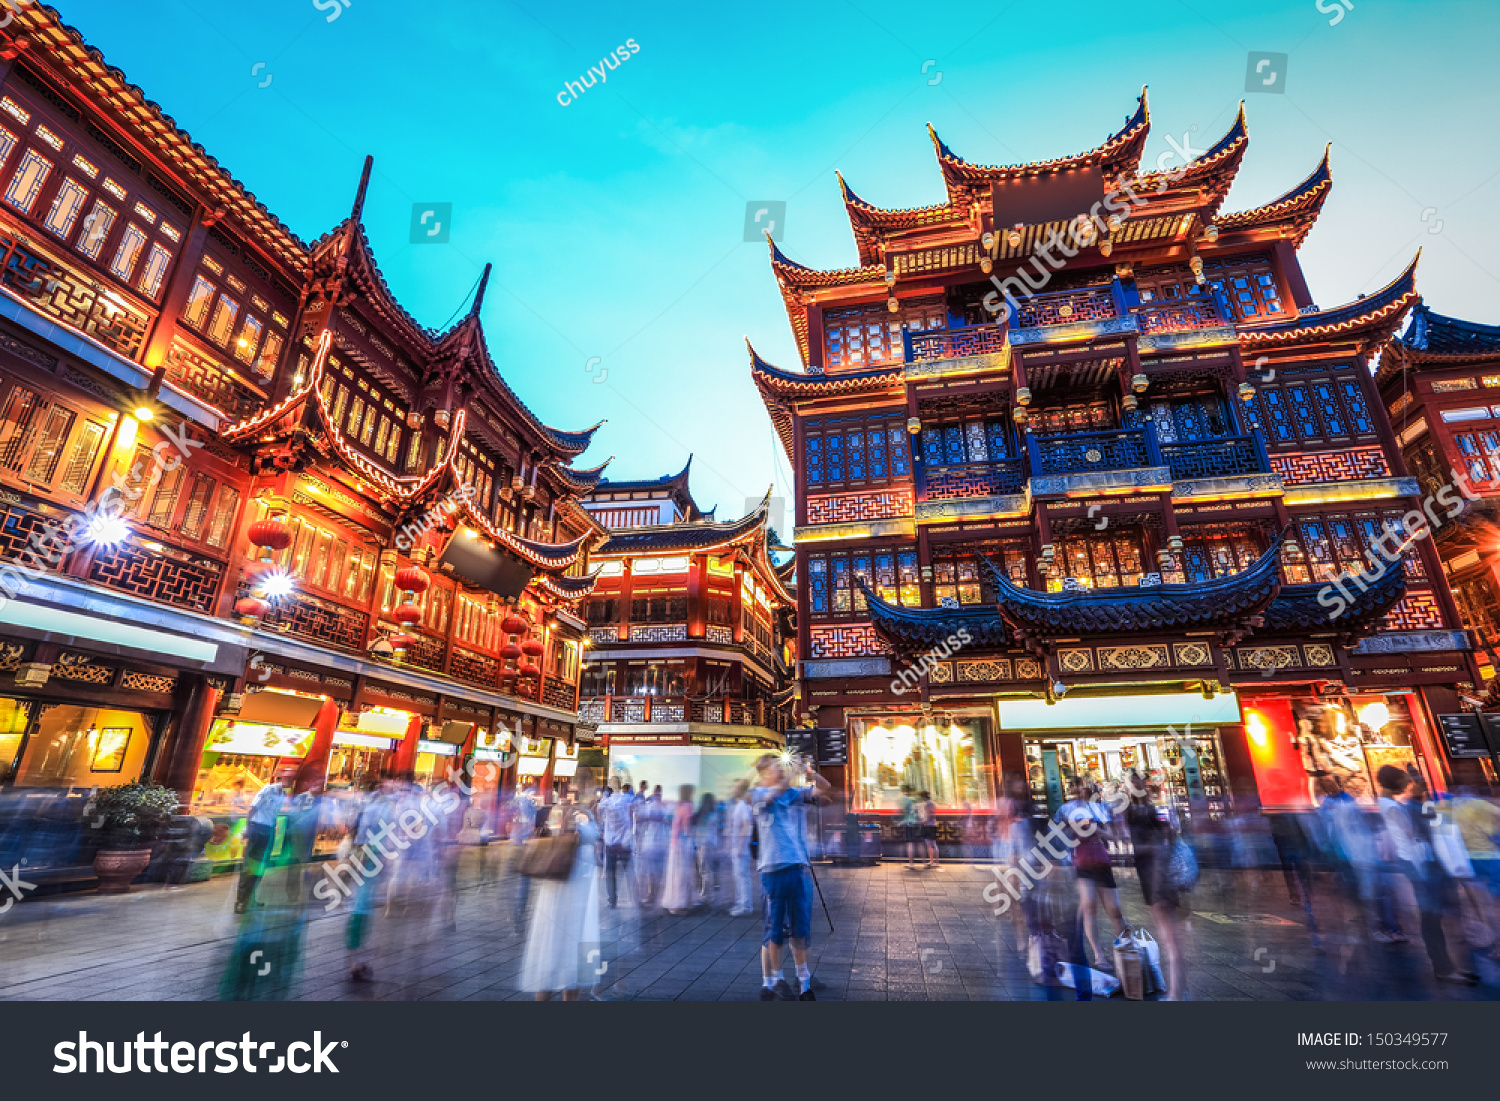 Beautiful yuyuan garden nighttraditional shopping area for Chinese in the area